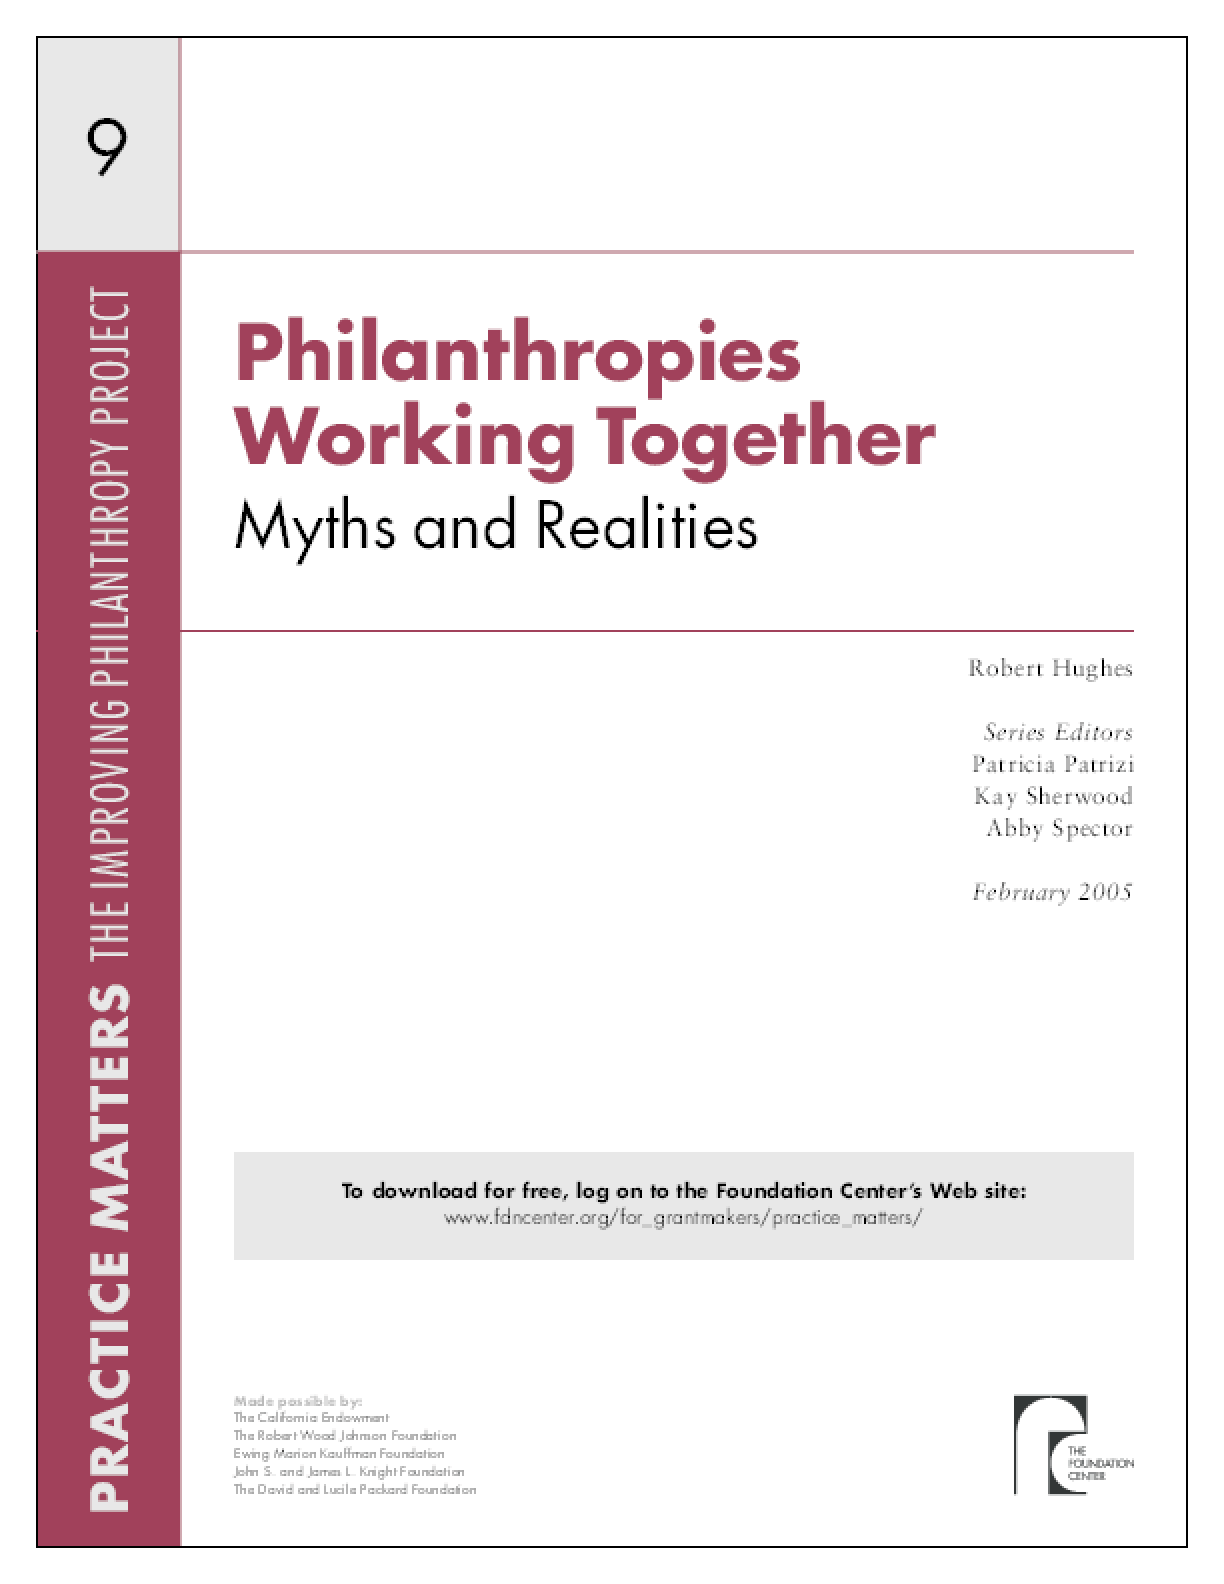 Philanthropies Working Together: Myths and Realities